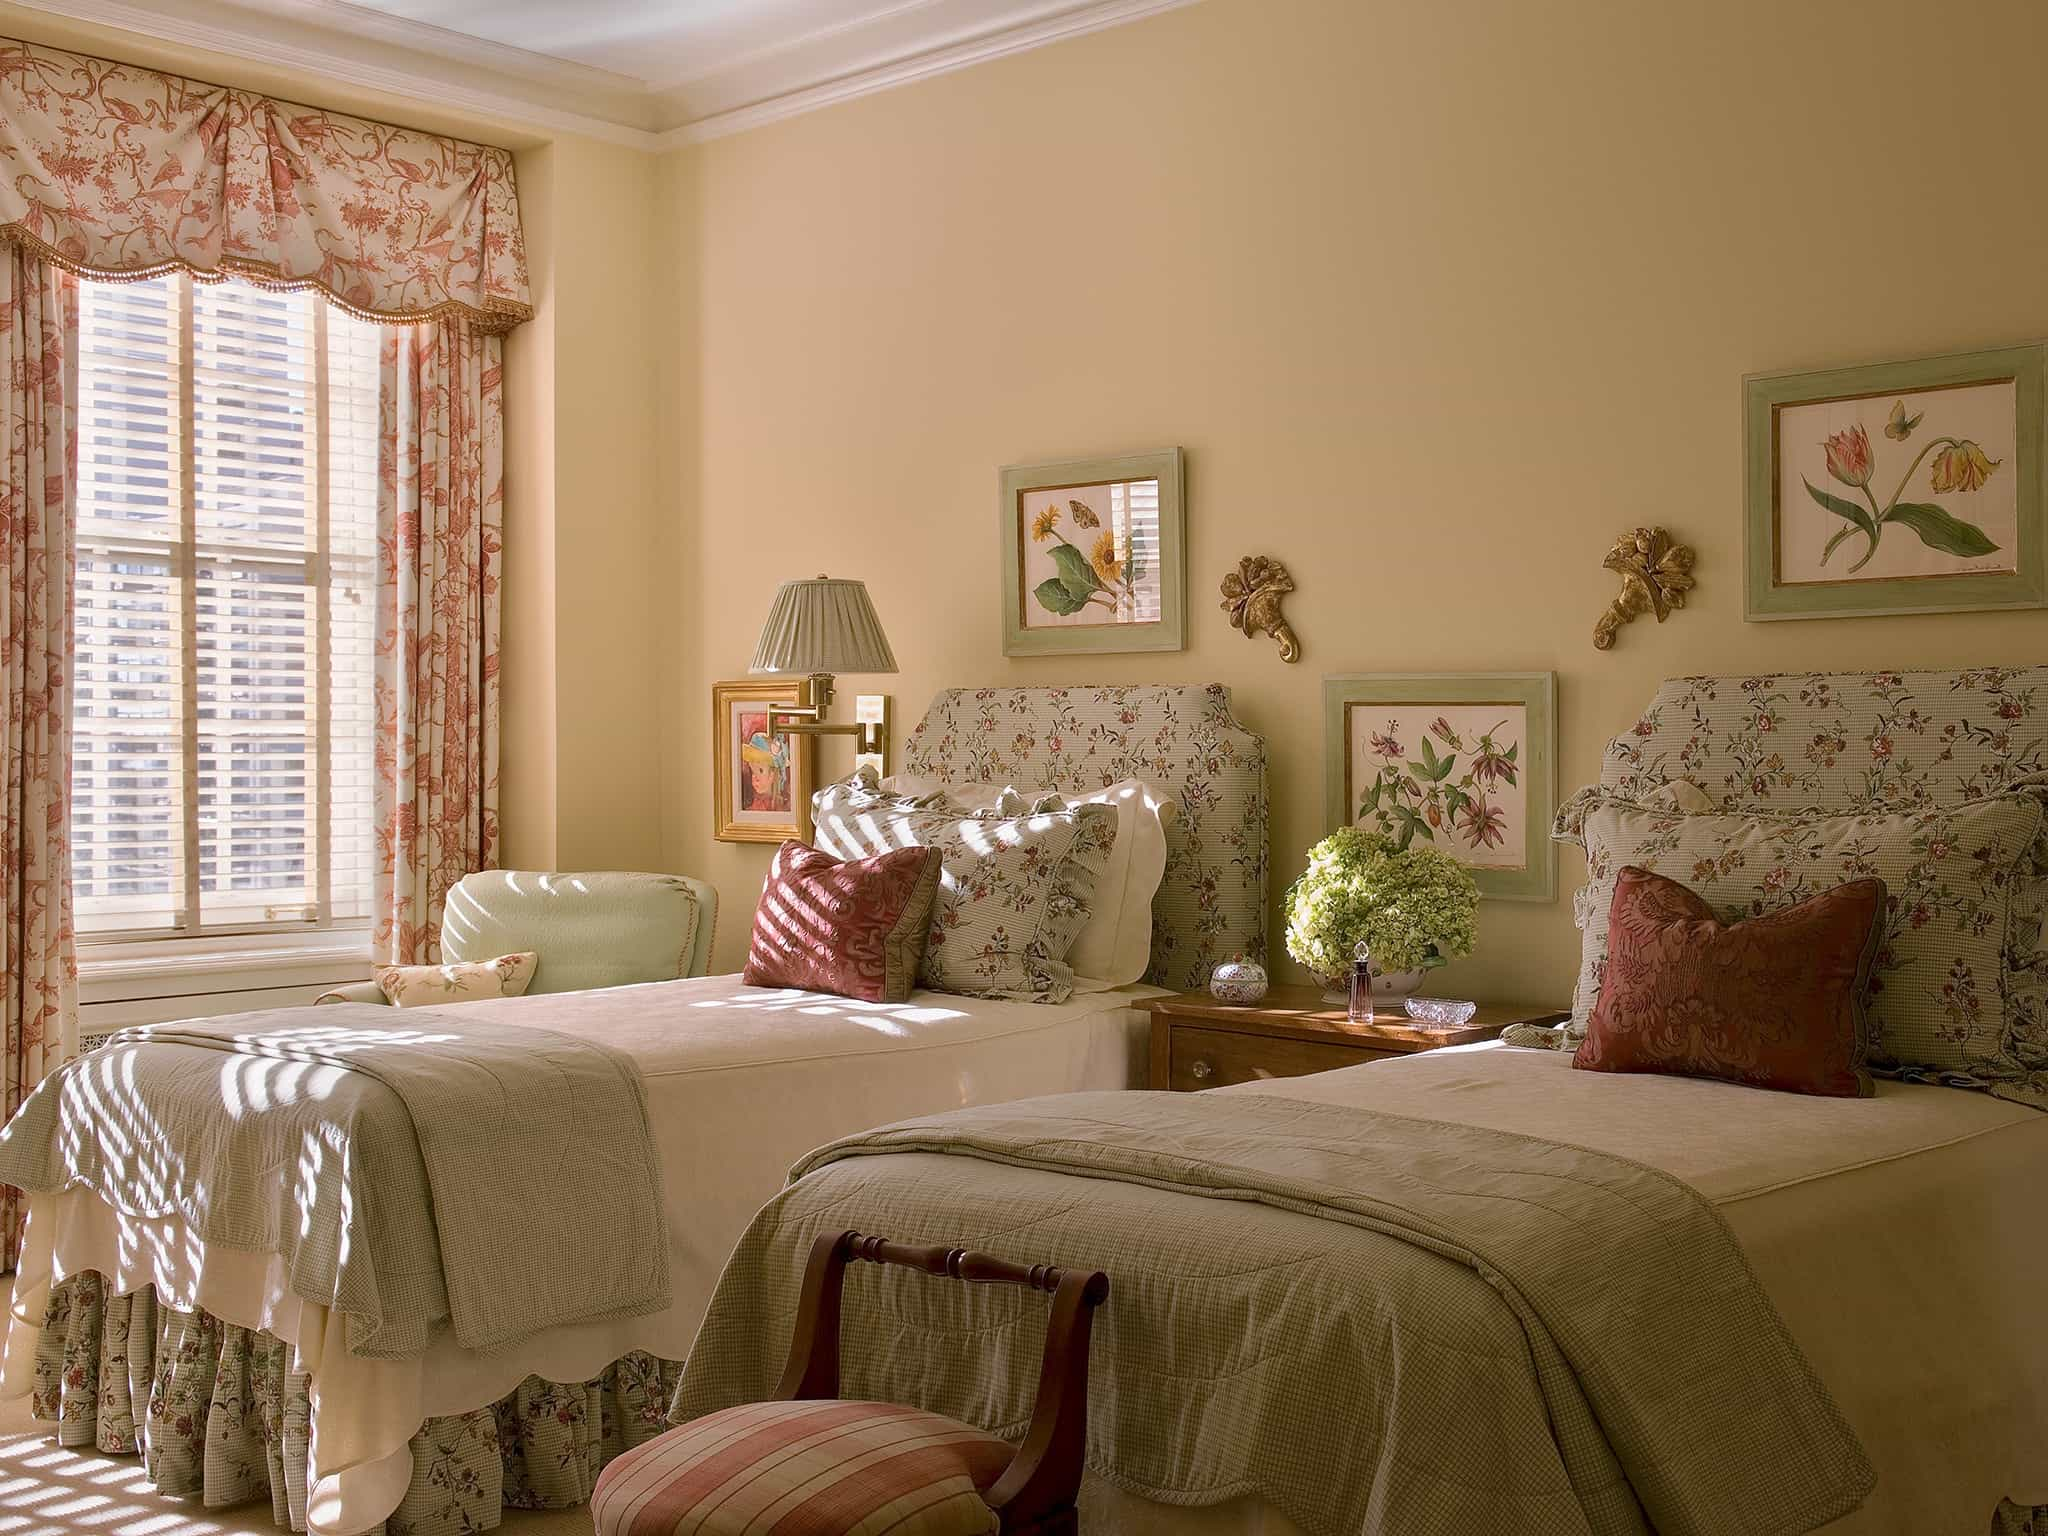 How To Decorate A Shabby Chic Bedroom #22944